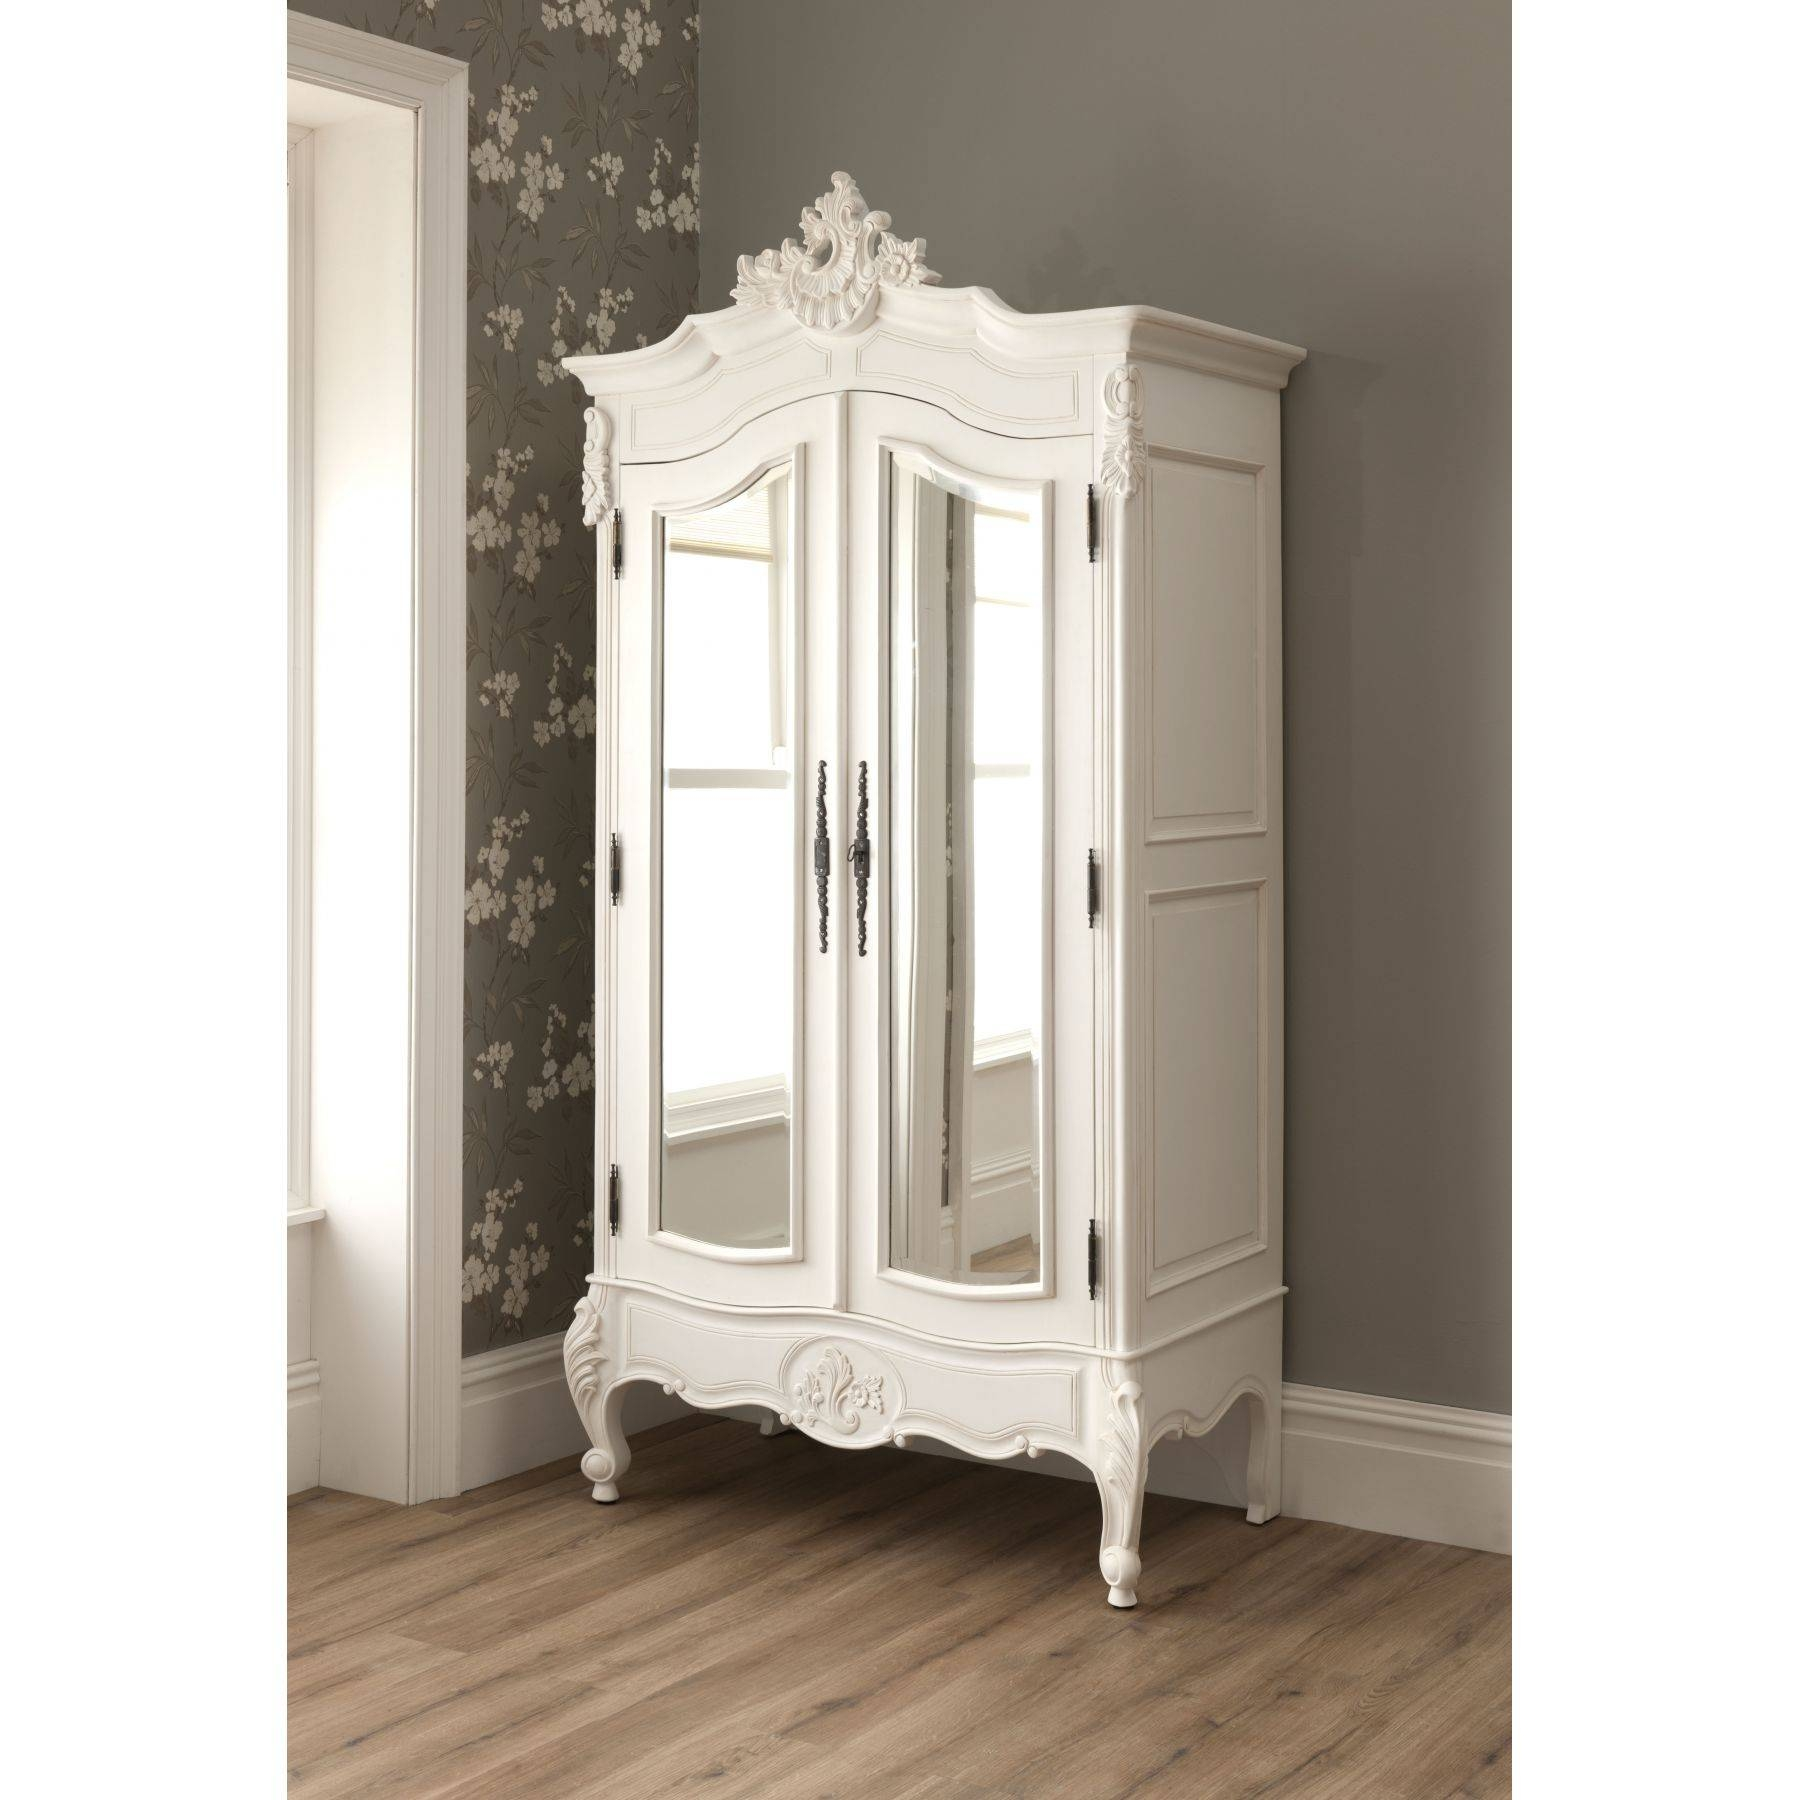 Furniture: Exciting Armoire Wardrobe For Interior Storage Design intended for French Armoires Wardrobes (Image 9 of 15)